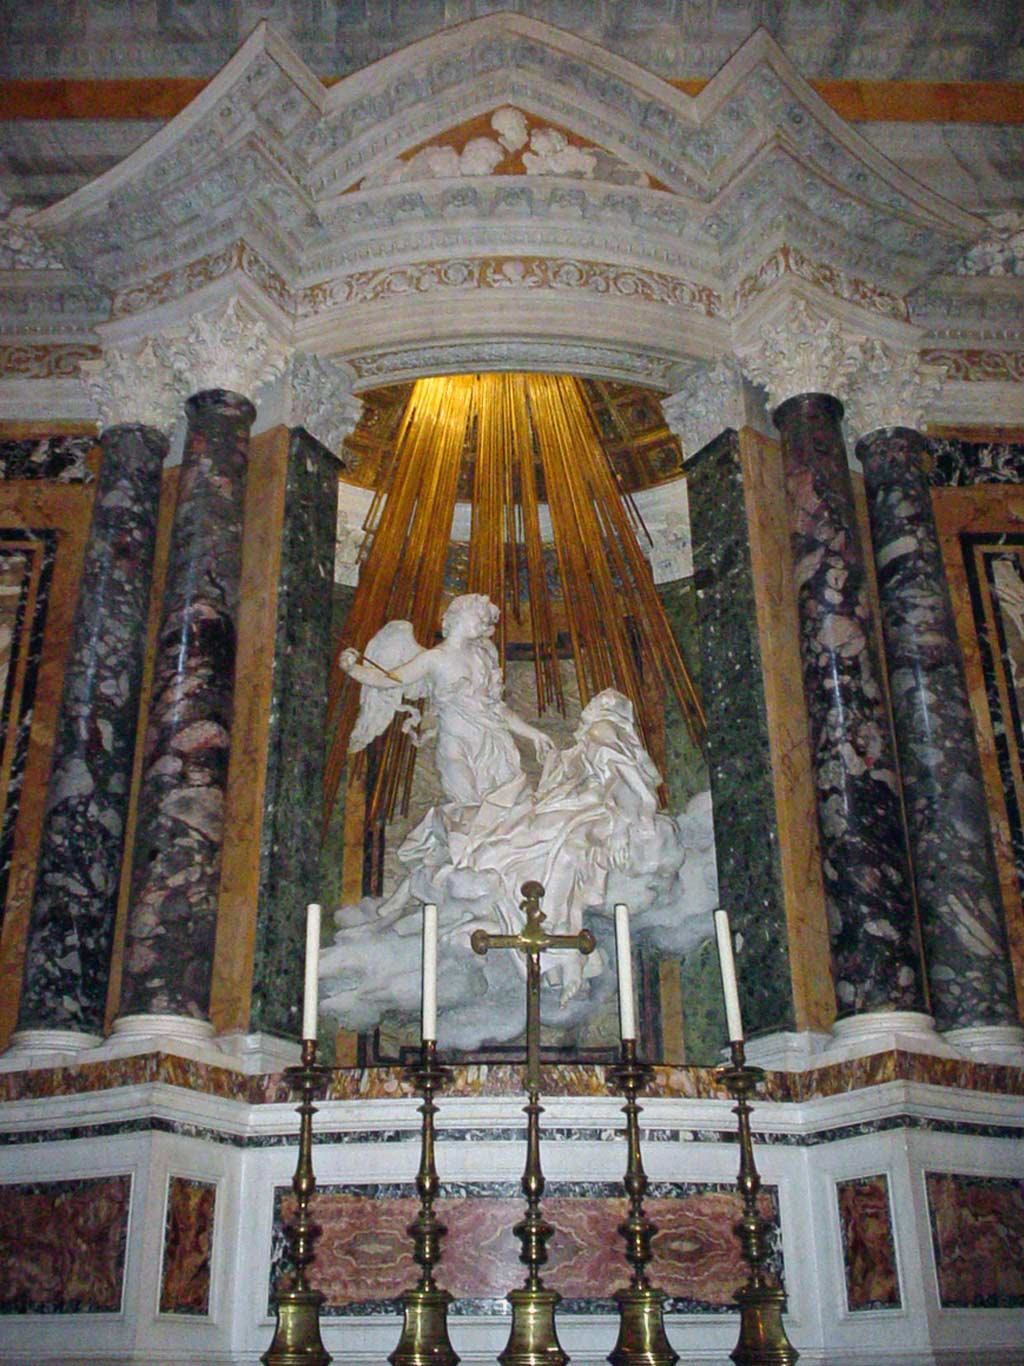 Bernini's Ecstasy of St. Teresa